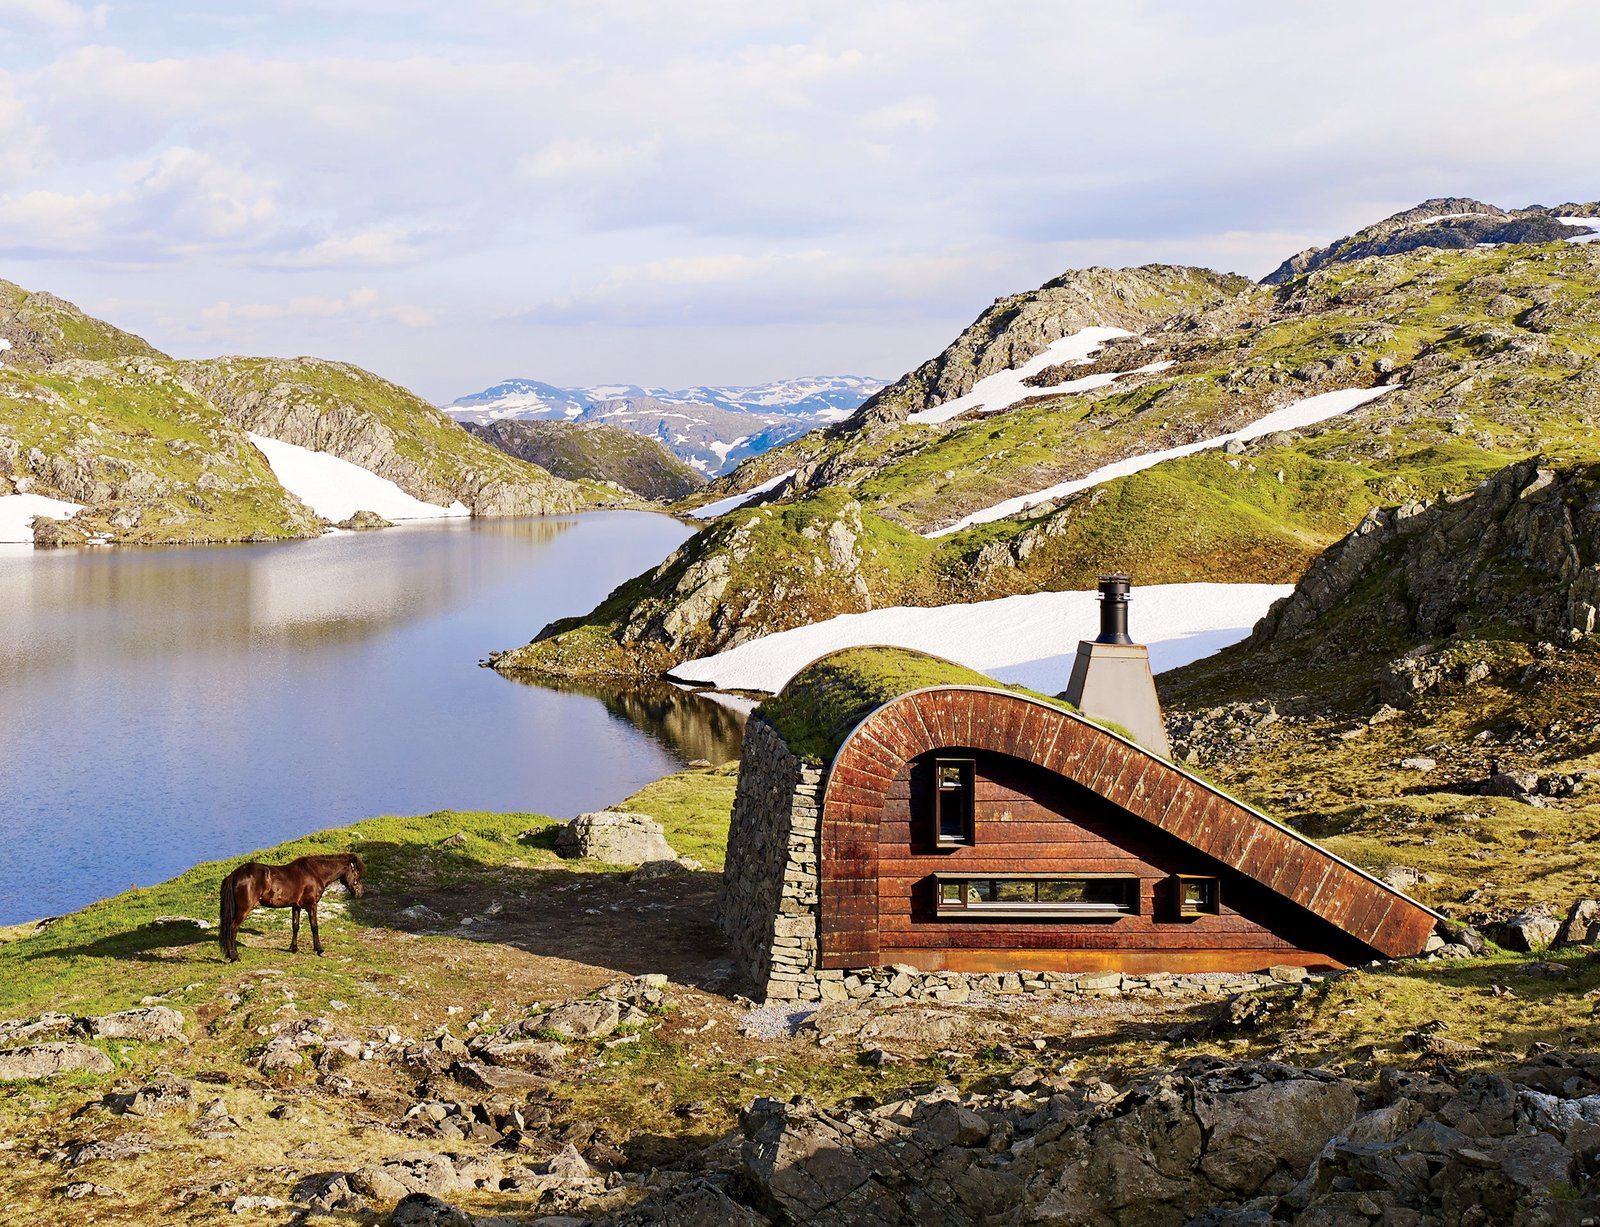 Exterior, Cabin Building Type, Curved RoofLine, Prefab Building Type, Green Roof Material, and Wood Siding Material The Bjellandsbu, a 376-square-foot hunting cabin located in western Norway. Designed by Snøhetta, Photo by James Silverman  #cabin #prefab #norway #horse #grassroof #snow  Photo 57 of 101 in 101 Best Modern Cabins from Cabins & Hideouts